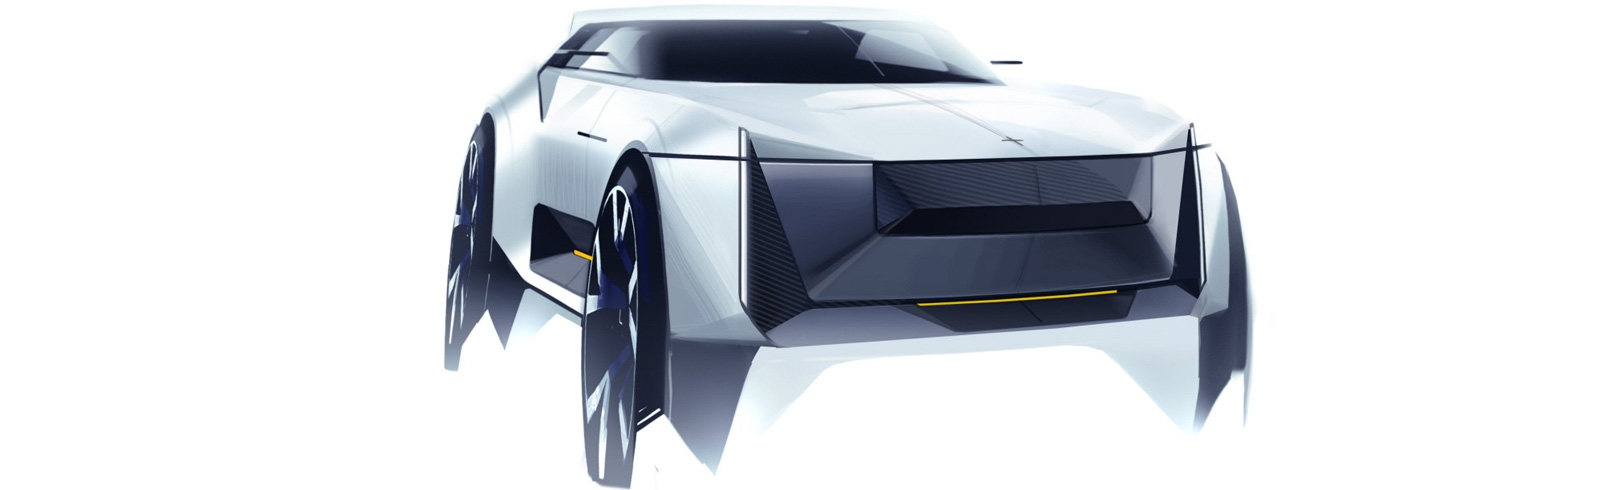 First sketches of the Polestar 3, will be based on Volvo's SPA platform